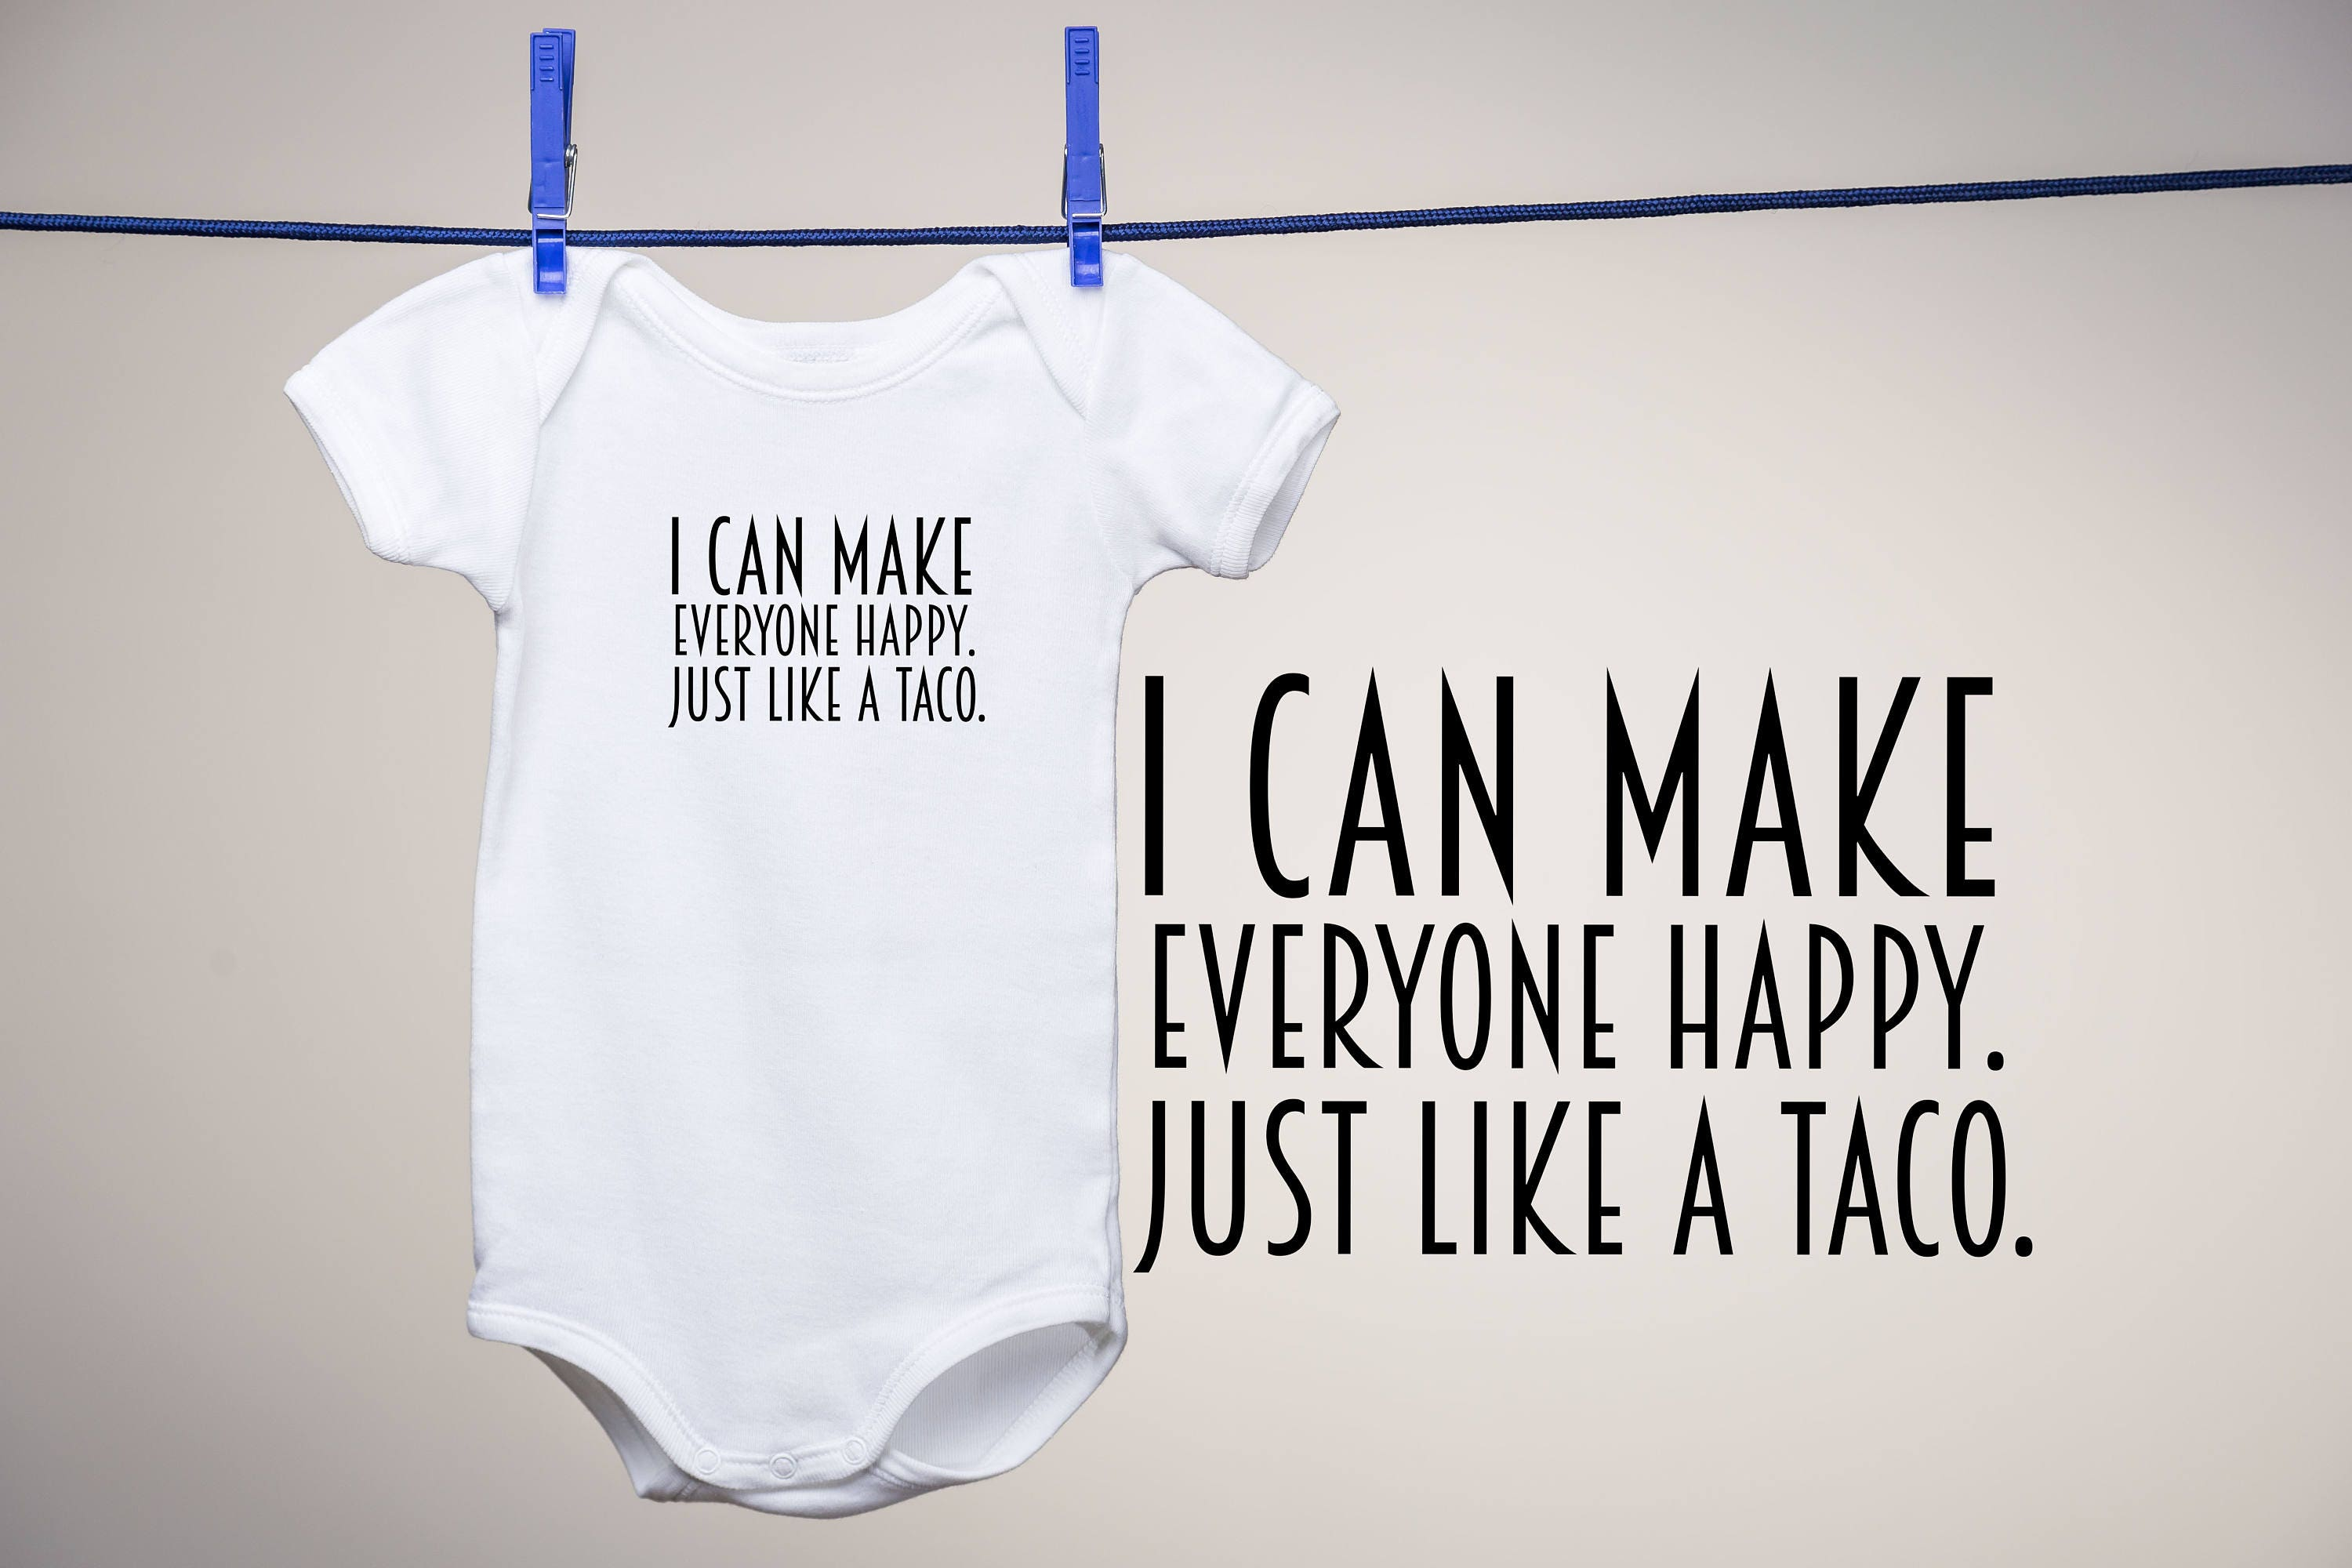 df338f91e3dd Taco Onesie 0-24m Gift for baby shower gift funny baby onesie Taco Lover  Taco